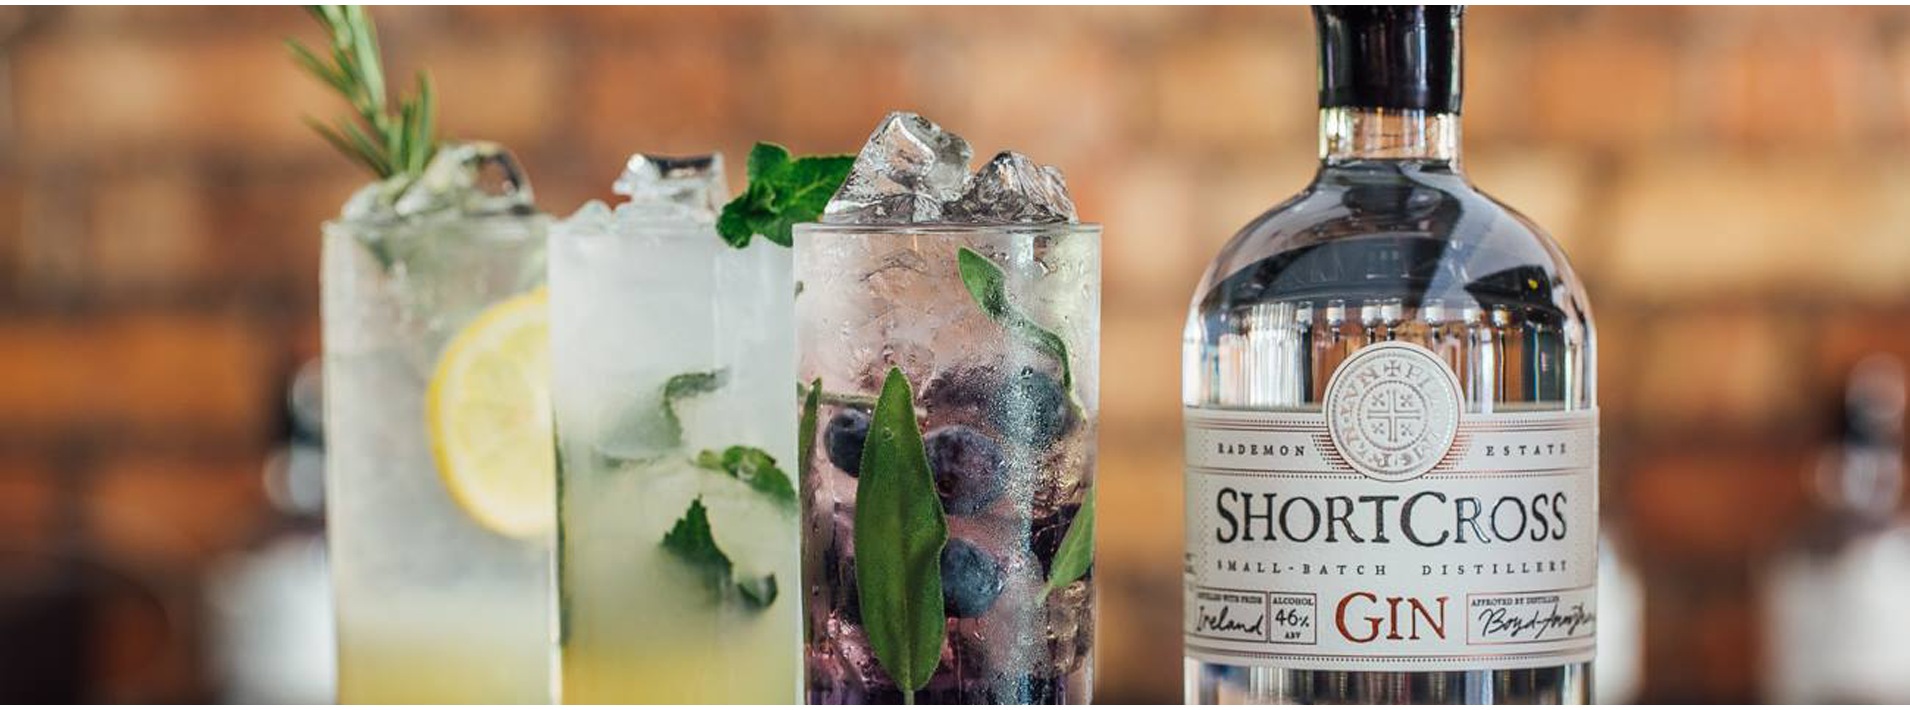 Craft Gin Distilled in Ireland | Shortcross Premium Gin